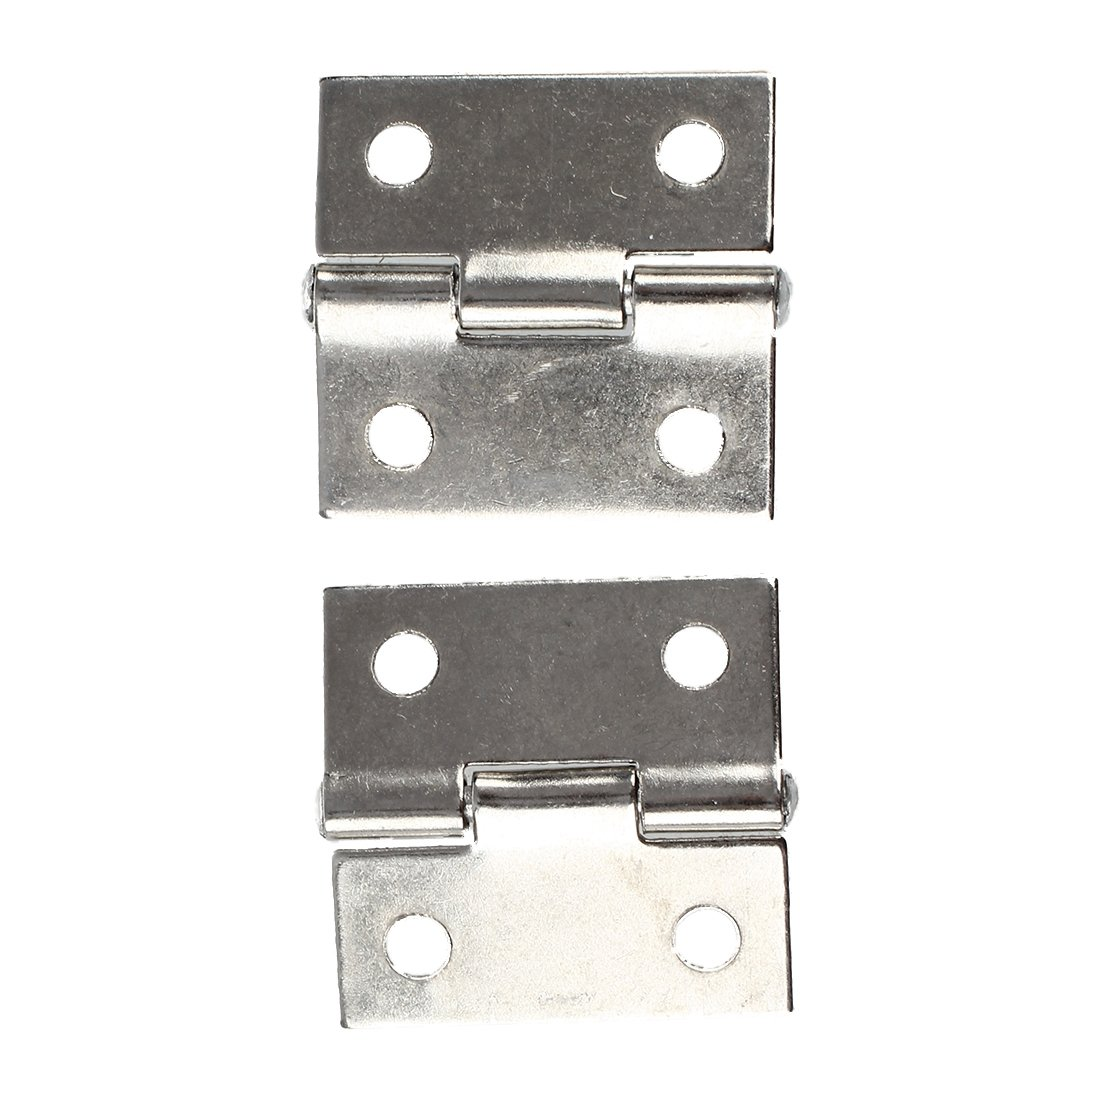 TOOGOO(R) 2 Pcs Gray Metal 1'' Small Butt Hinge for Cabinet Drawer